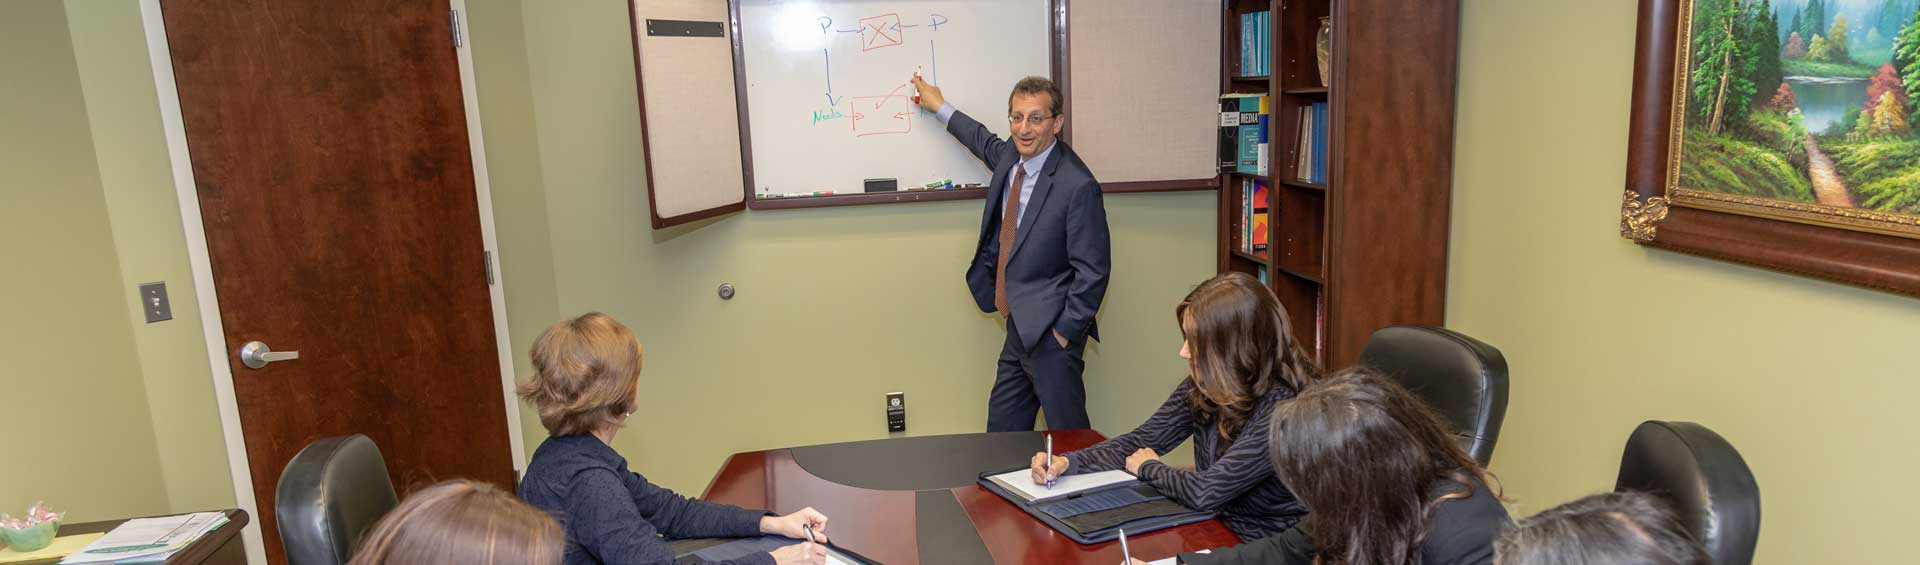 adam berner gesturing towards white board in conference room with team at desk writing in notebooks